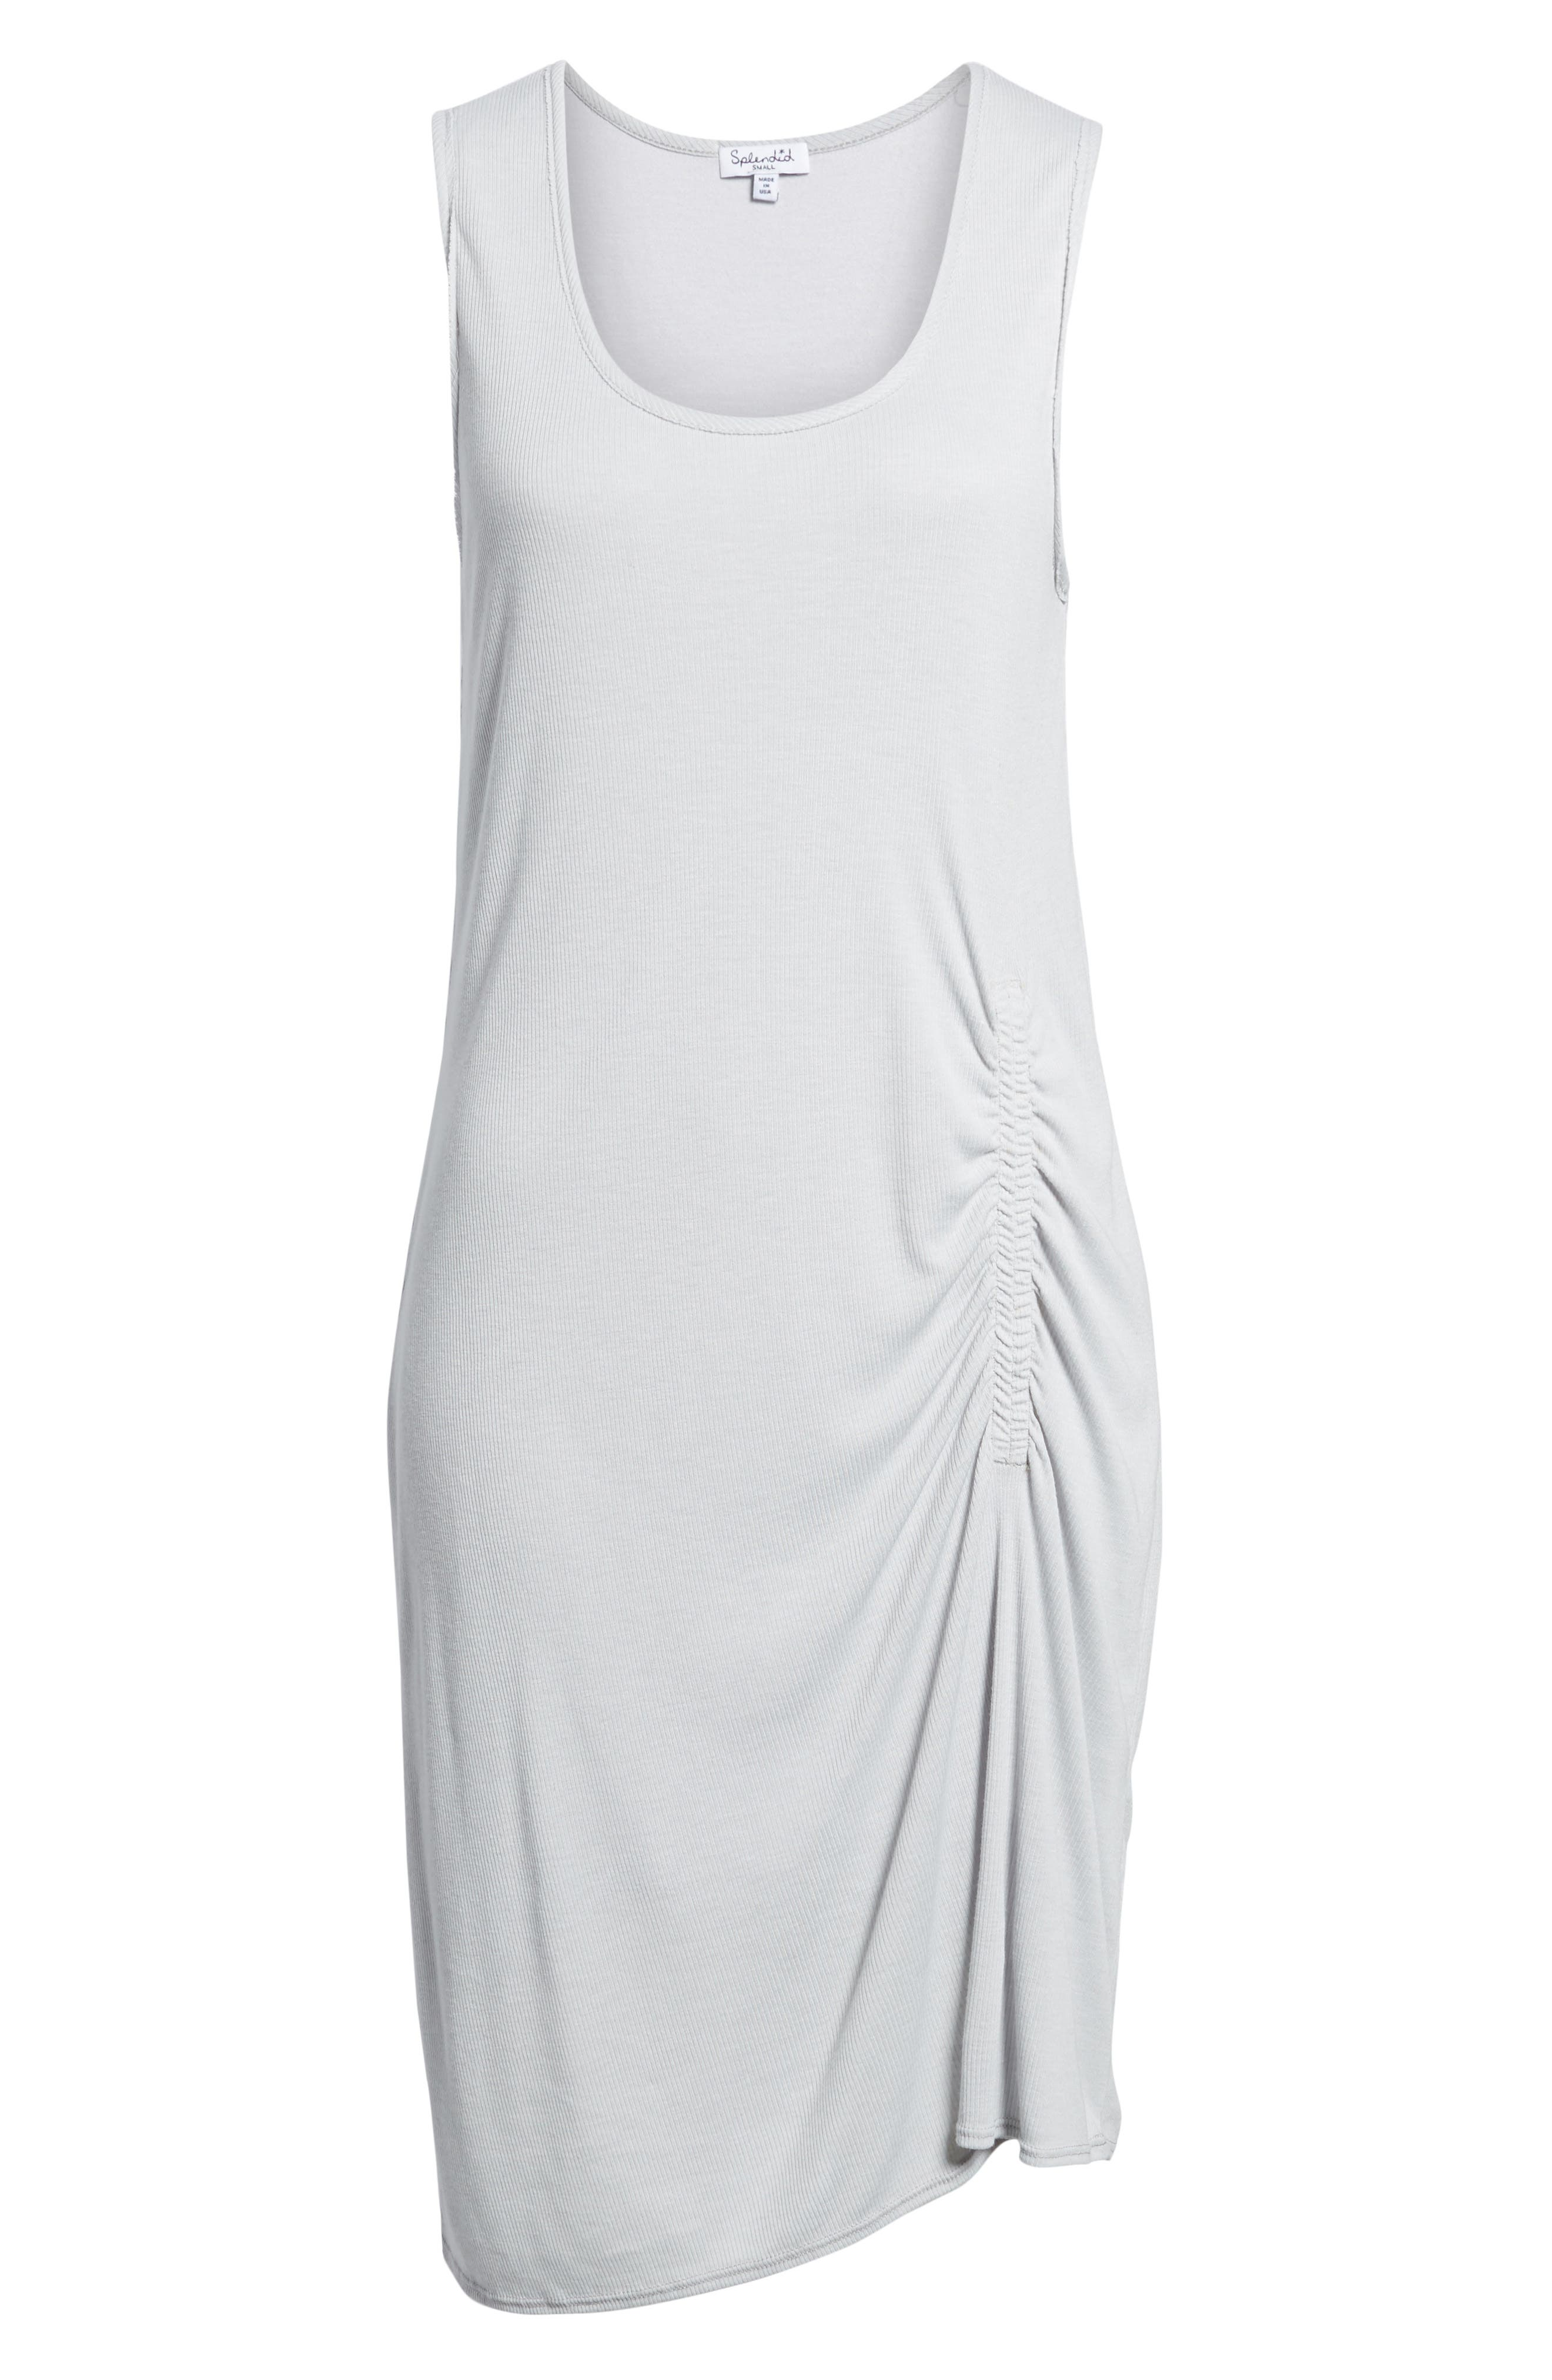 Ruched Rib Knit Dress,                             Alternate thumbnail 6, color,                             HEATHER GREY